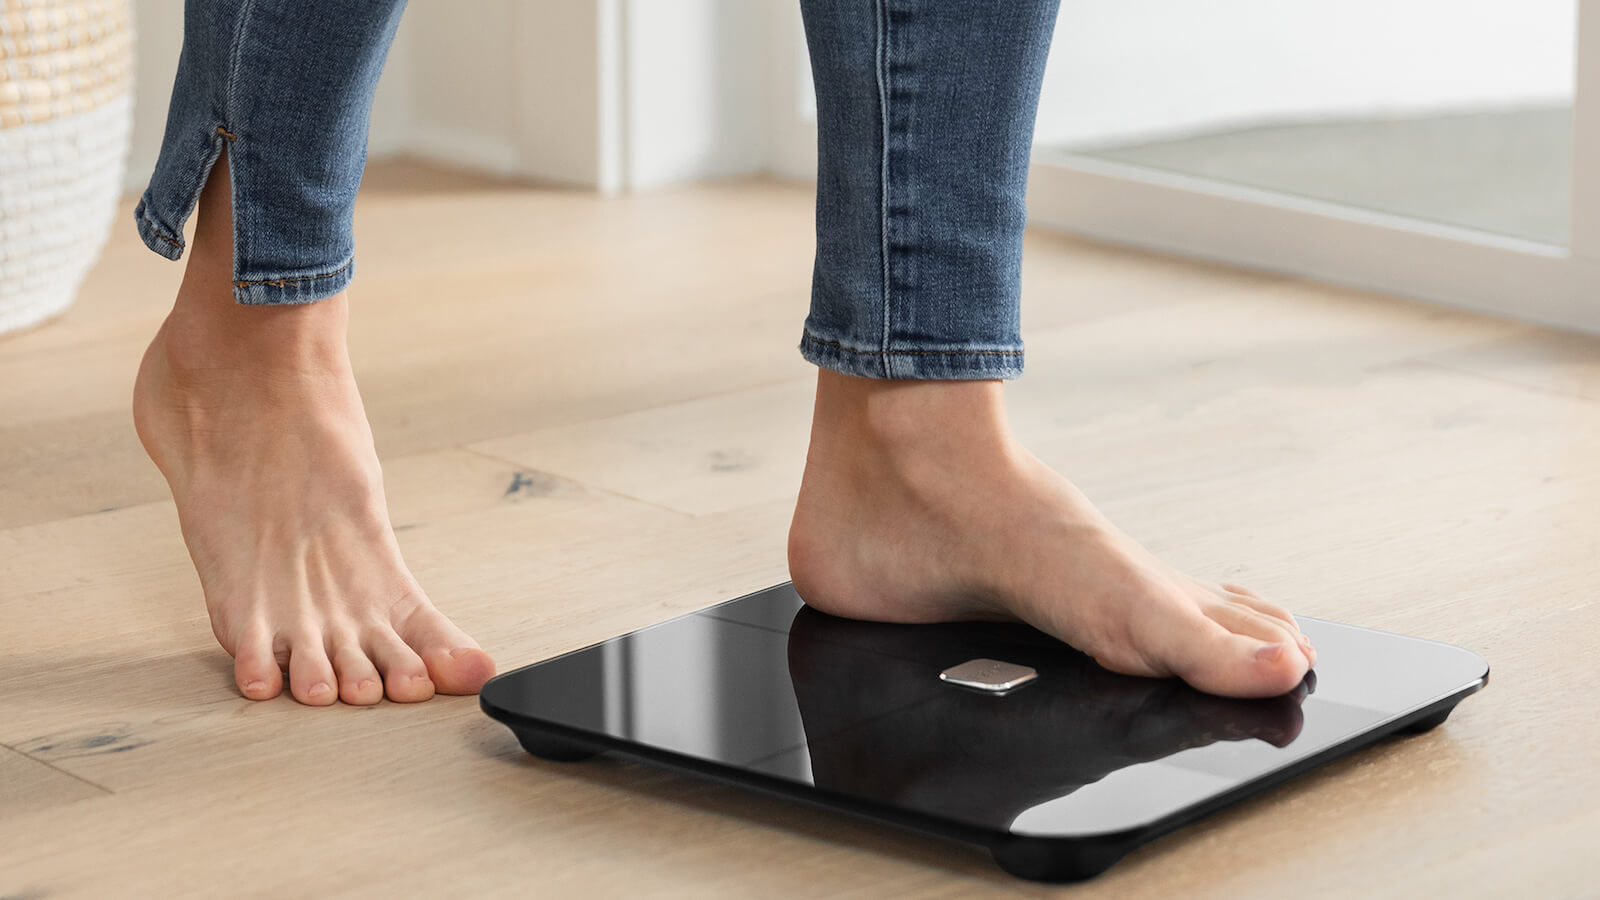 Wyze Scale body fat analyzer measures your lean body mass